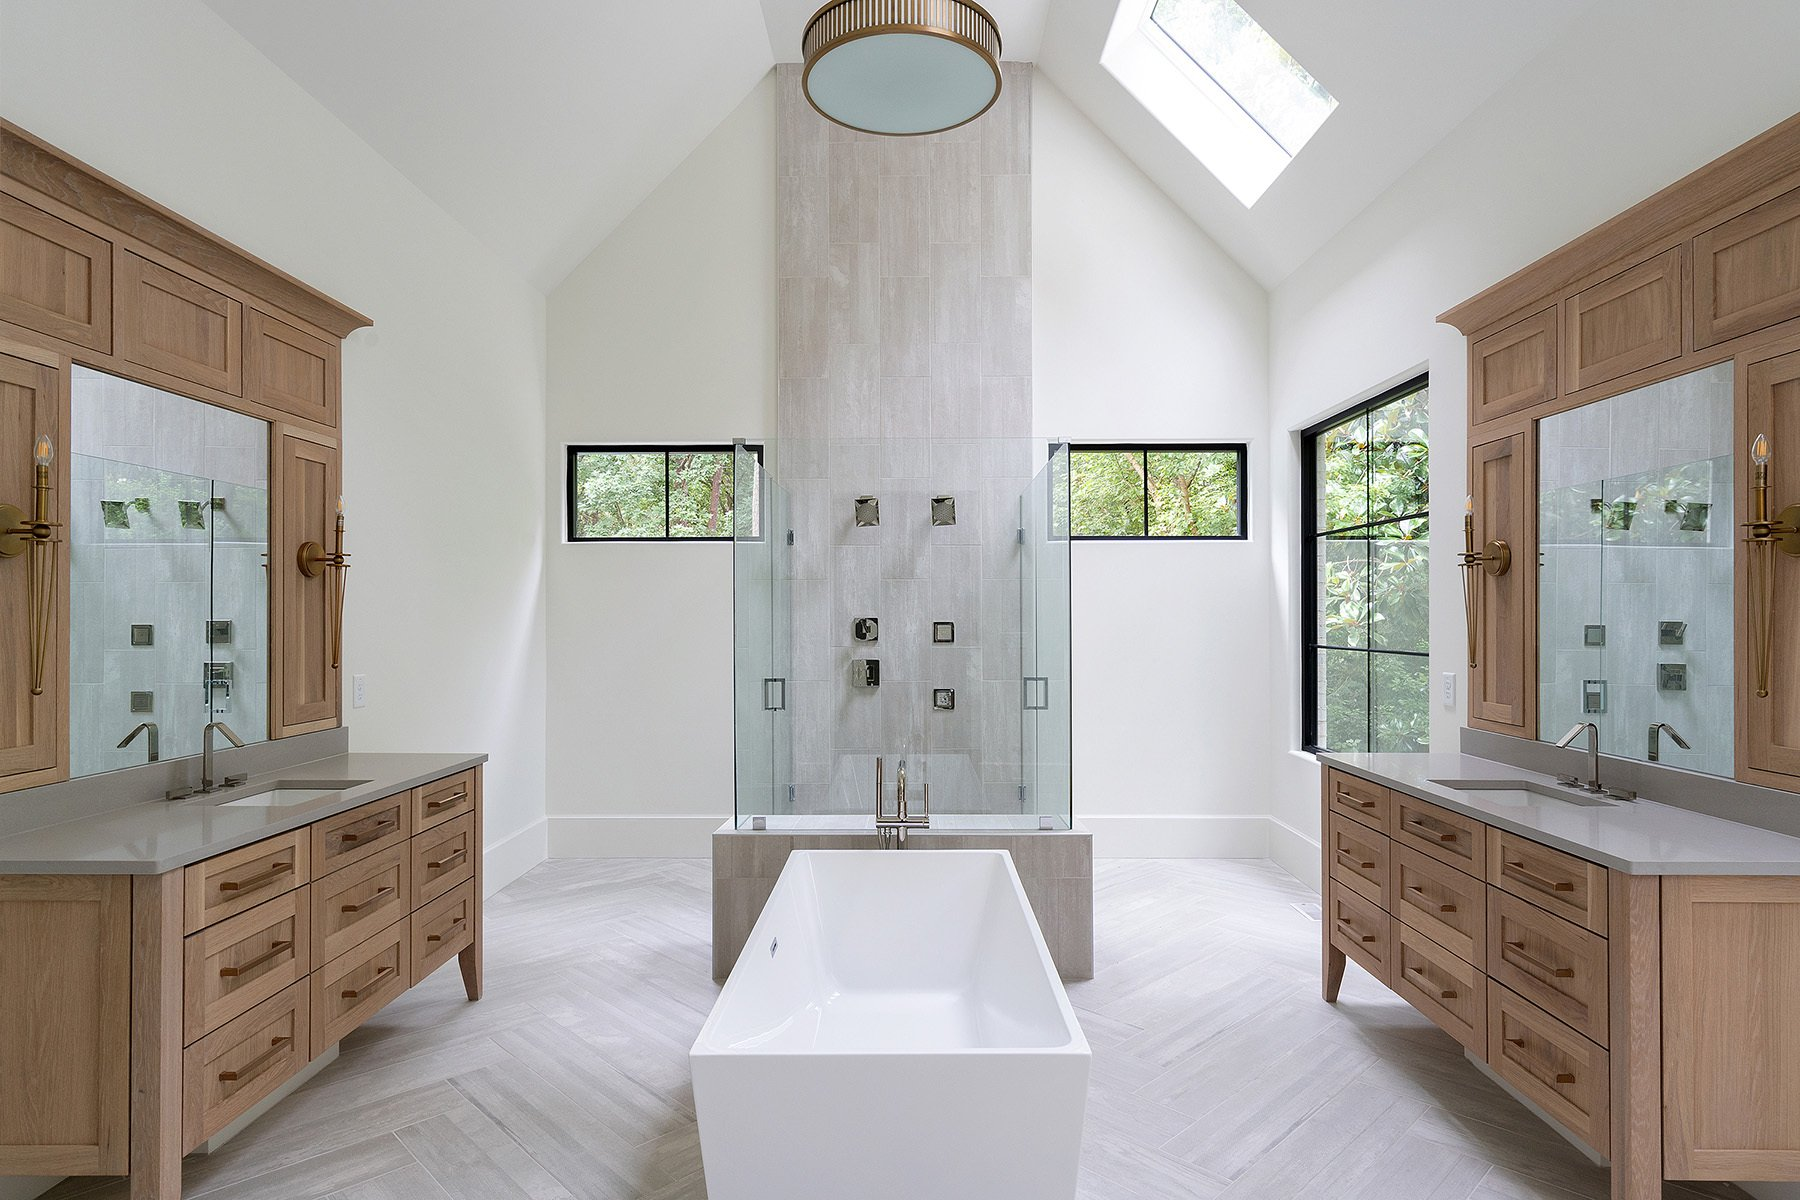 Bathroom vaulted ceiling with skylights. Modern design.